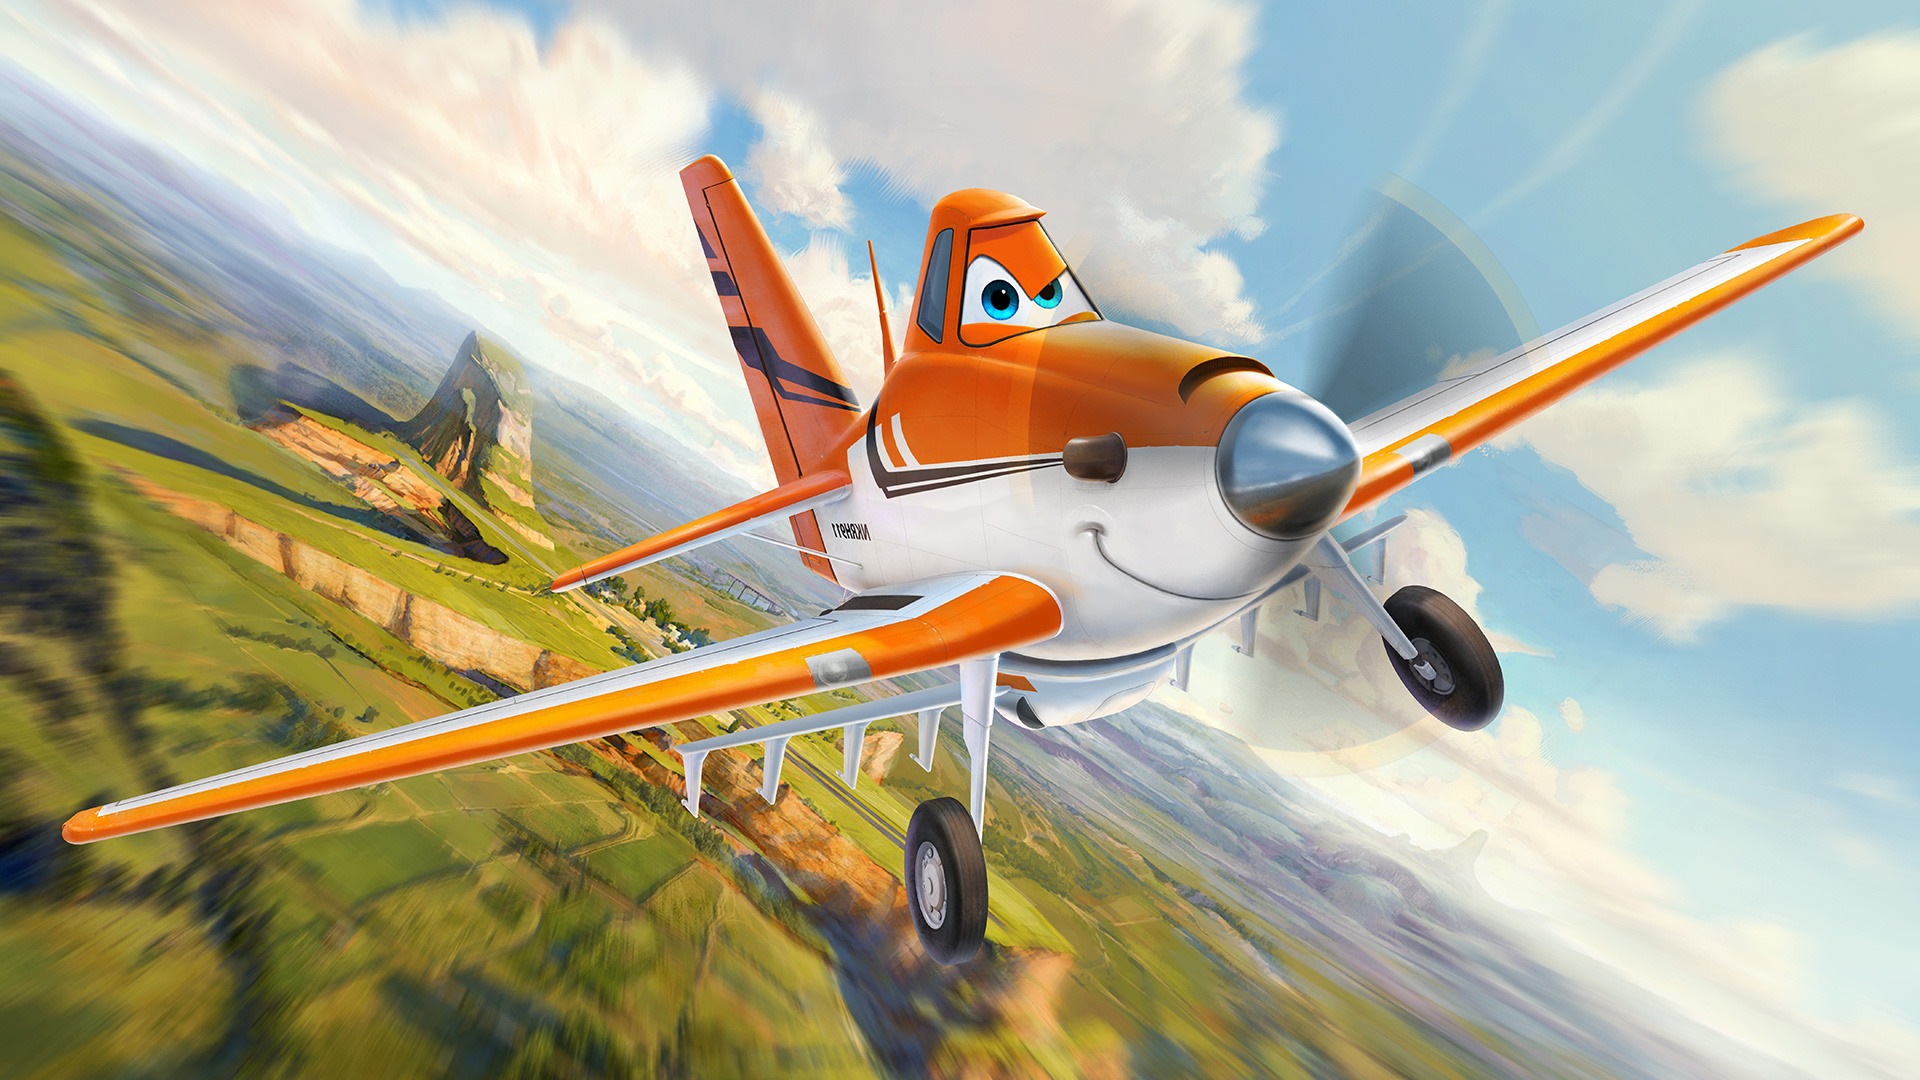 Planes Movie Archives - HDWallSource.com - HDWallSource.com